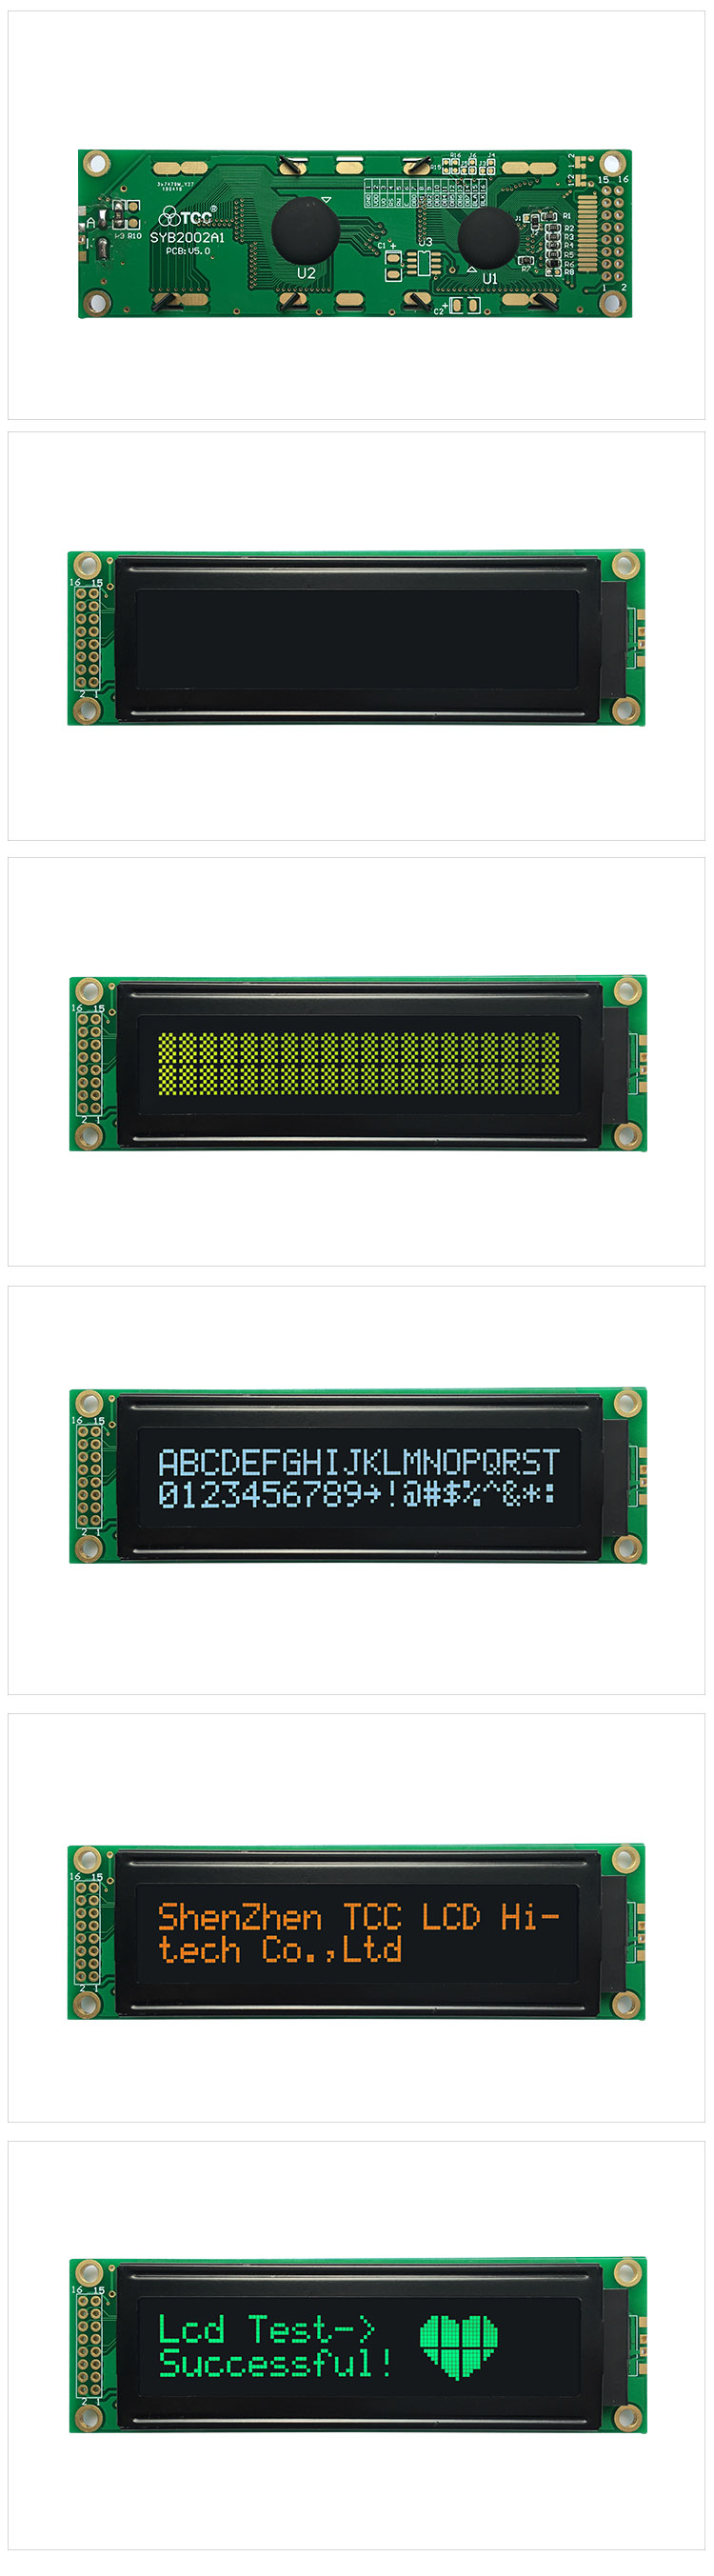 TCC(2002A1V50) custom alphanumeric display module 6800 4/8-bit parallel SPI 3/4-wire I2C serial screen stn character lcd 20x2